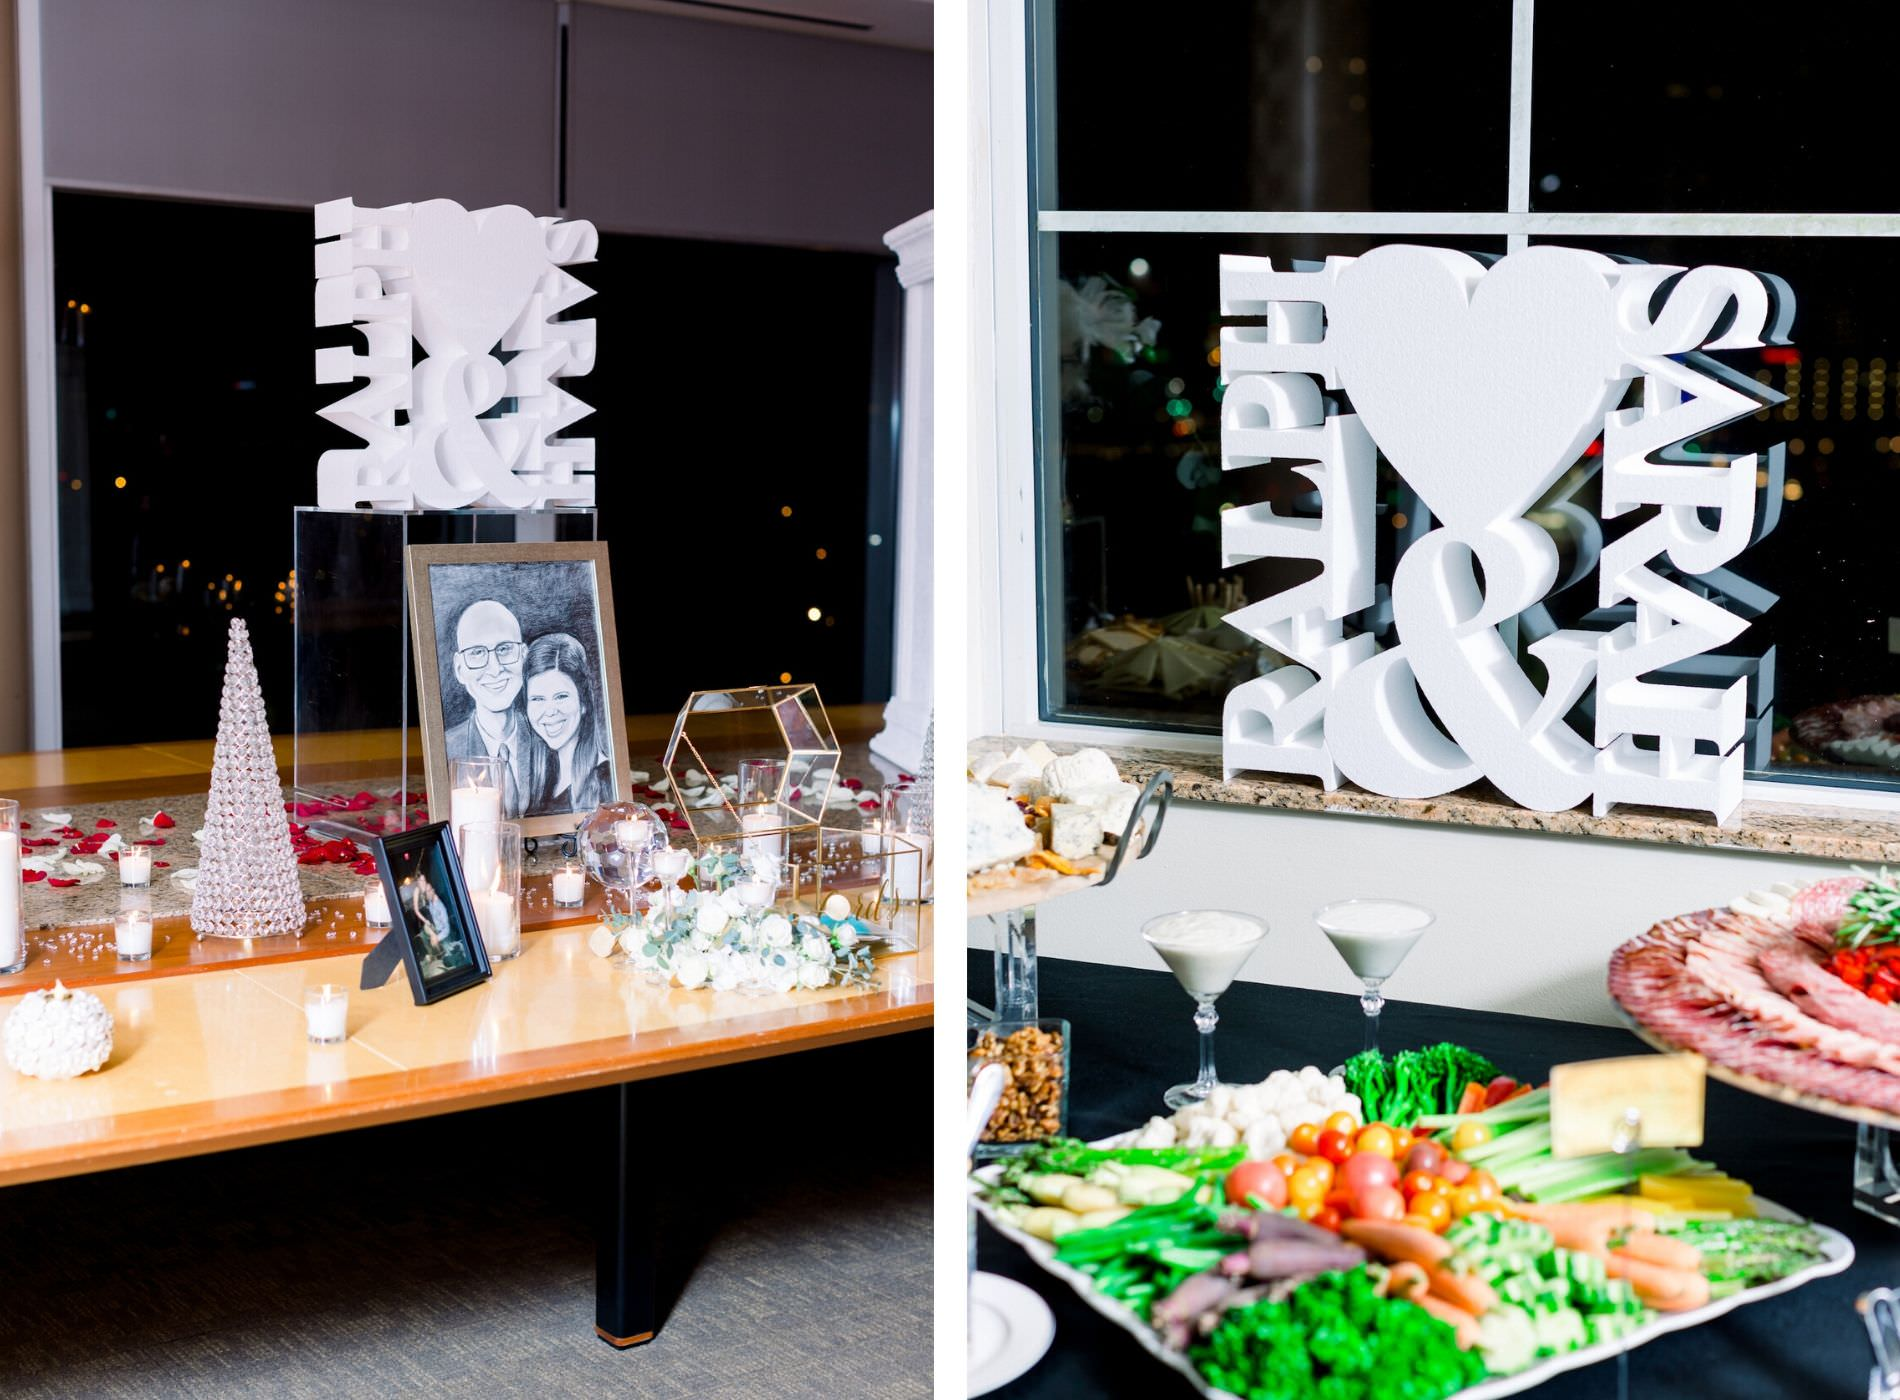 New Year's Eve Wedding Reception Decor, Custom Bride and Groom Laser Cut White Name Sign and Vegetable Platter | Wedding Photographer Shauna and Jordon Photography | Tampa Bay Wedding Planner UNIQUE Weddings + Events | Wedding Rentals A Chair Affair